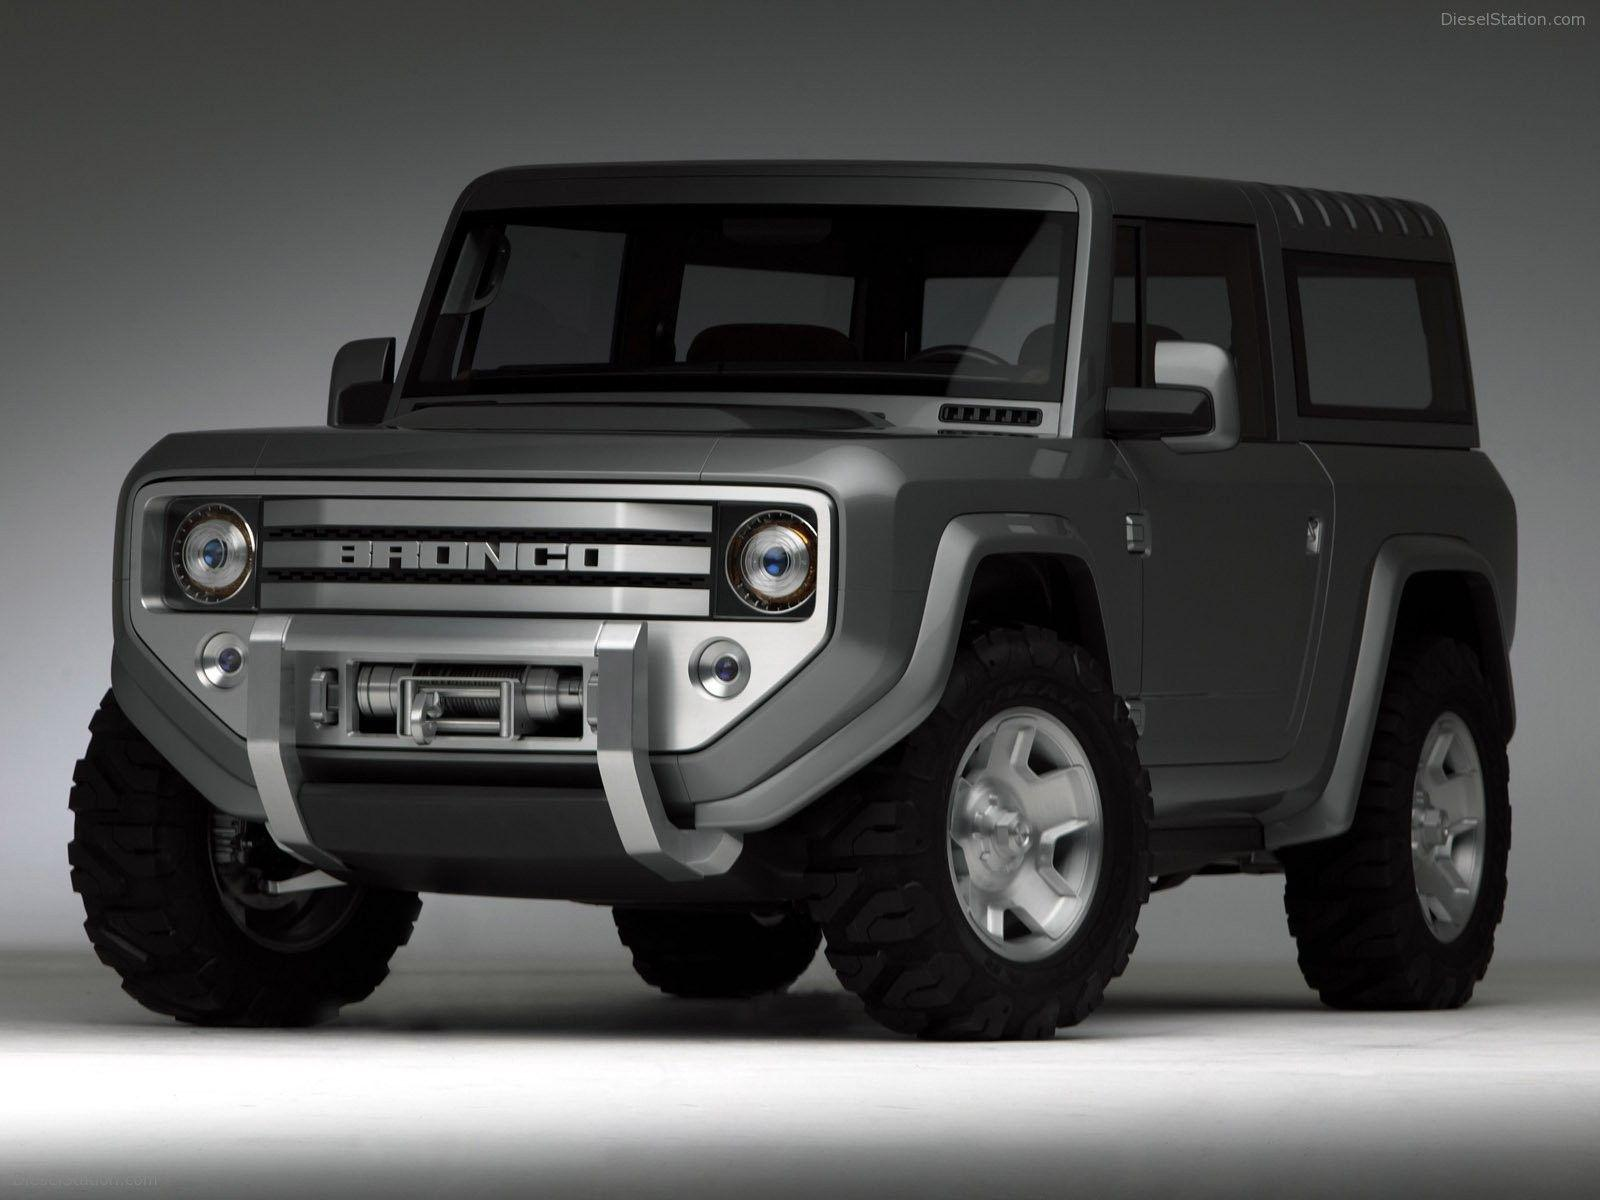 Ford Bronco Wallpapers Top Free Ford Bronco Backgrounds Wallpaperaccess